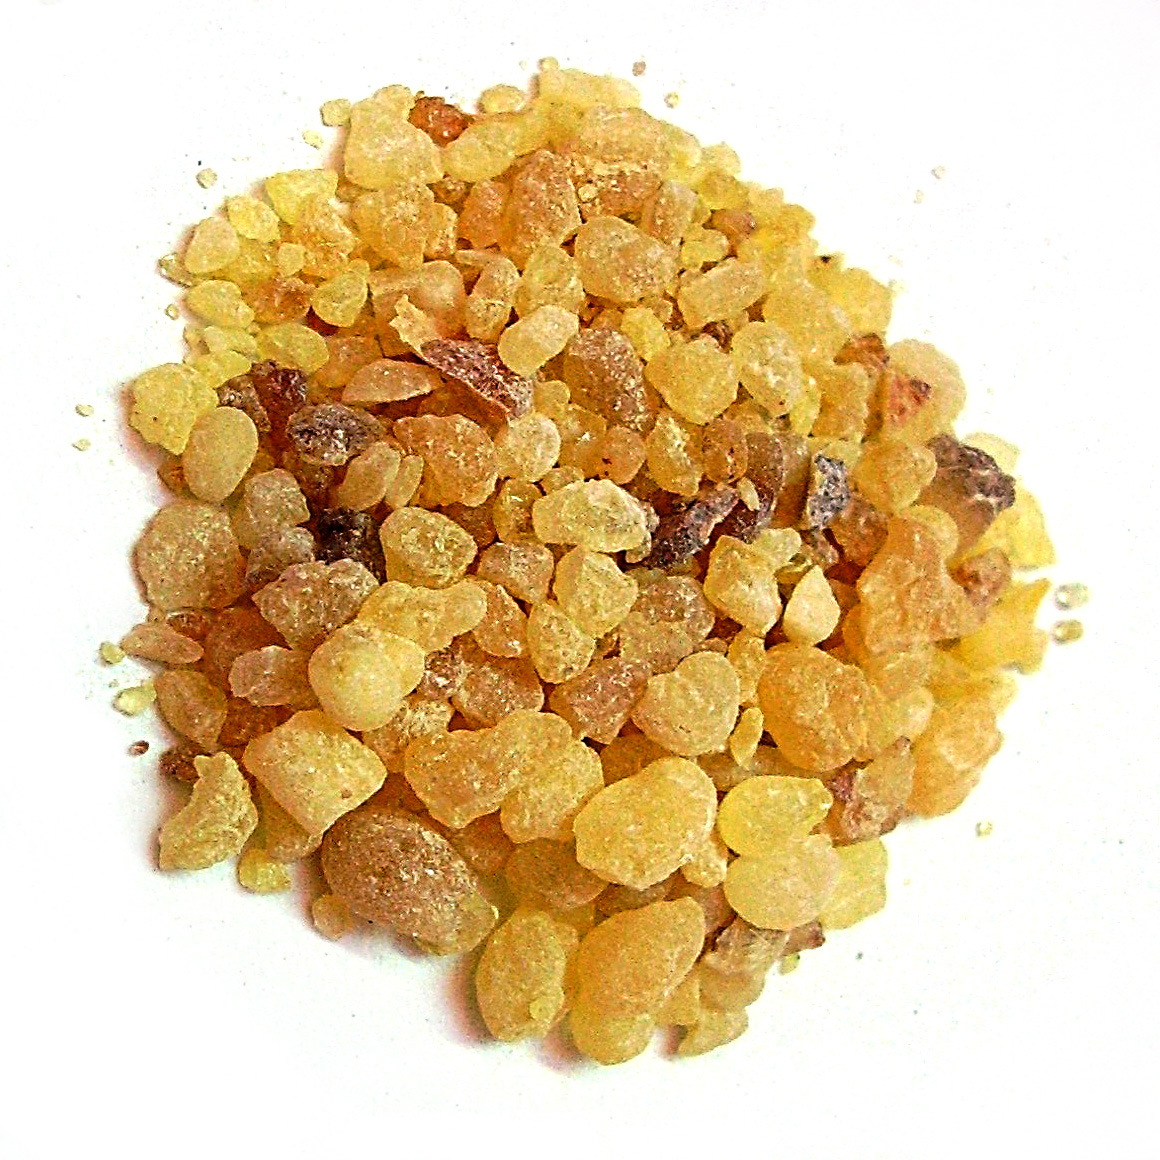 File:Olibanum resin.jpg - Wikipedia, the free encyclopedia